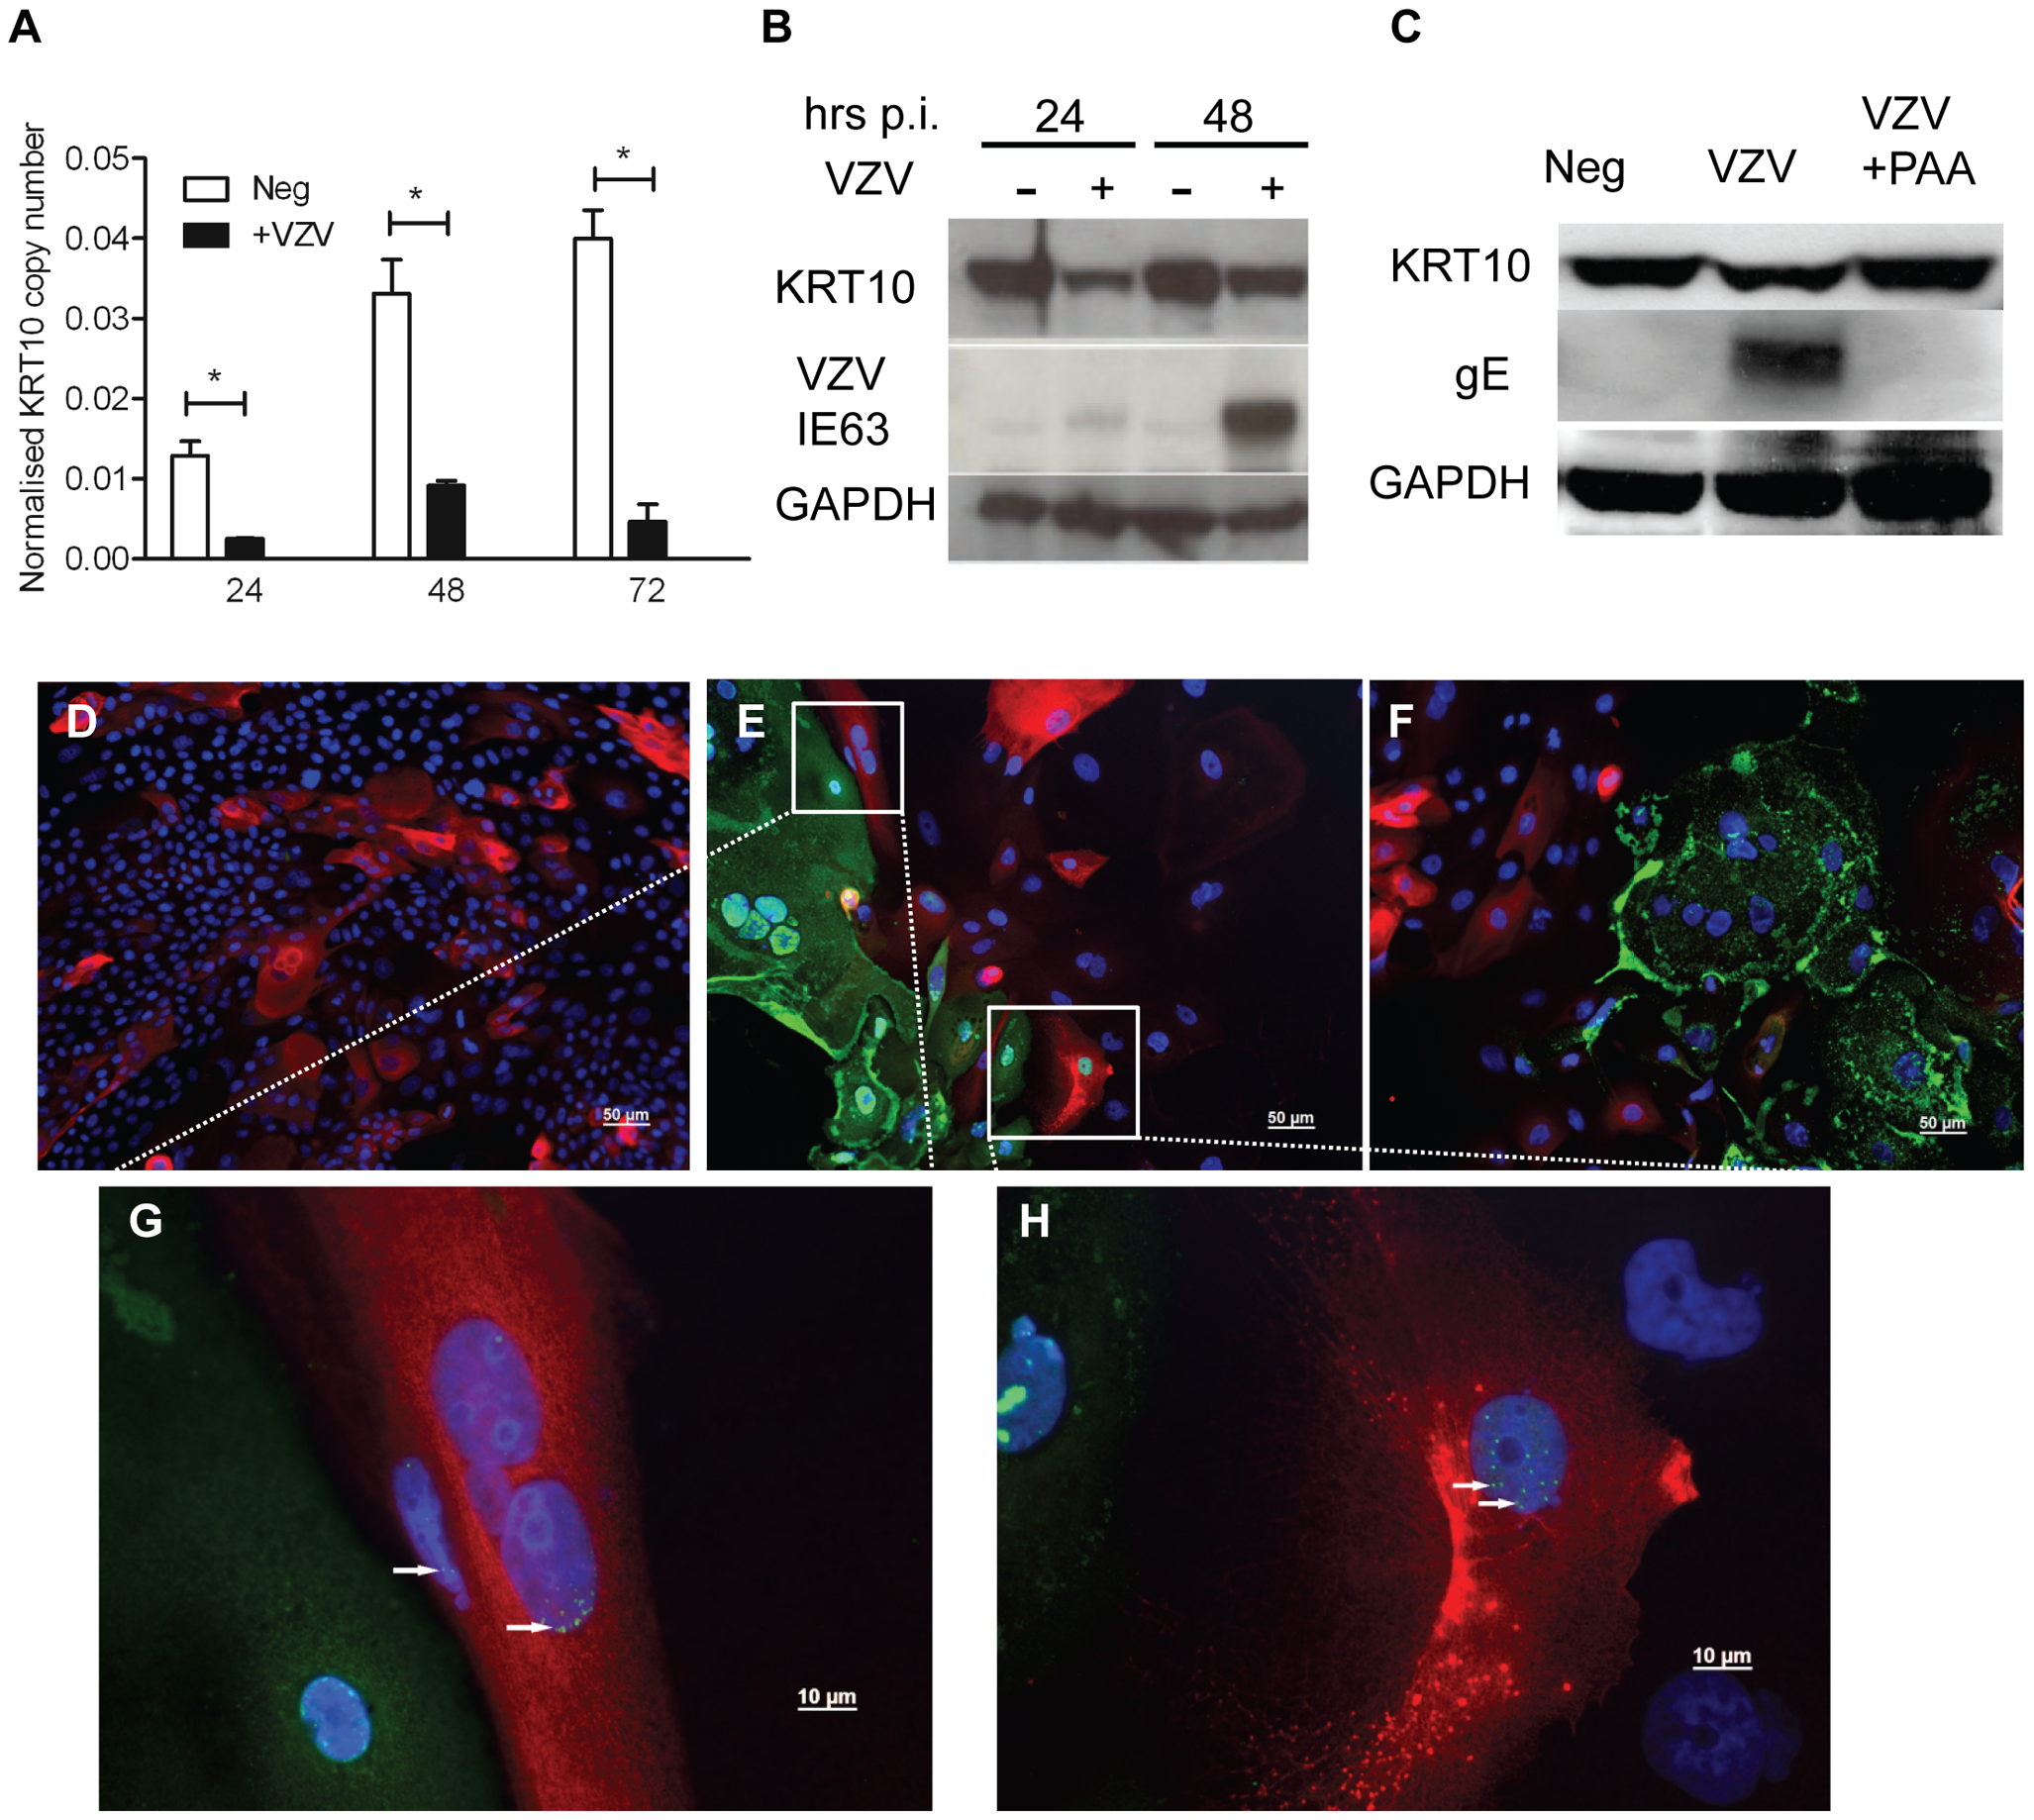 Confirming the downregulation of KRT10 by VZV in a keratinocyte cell line.